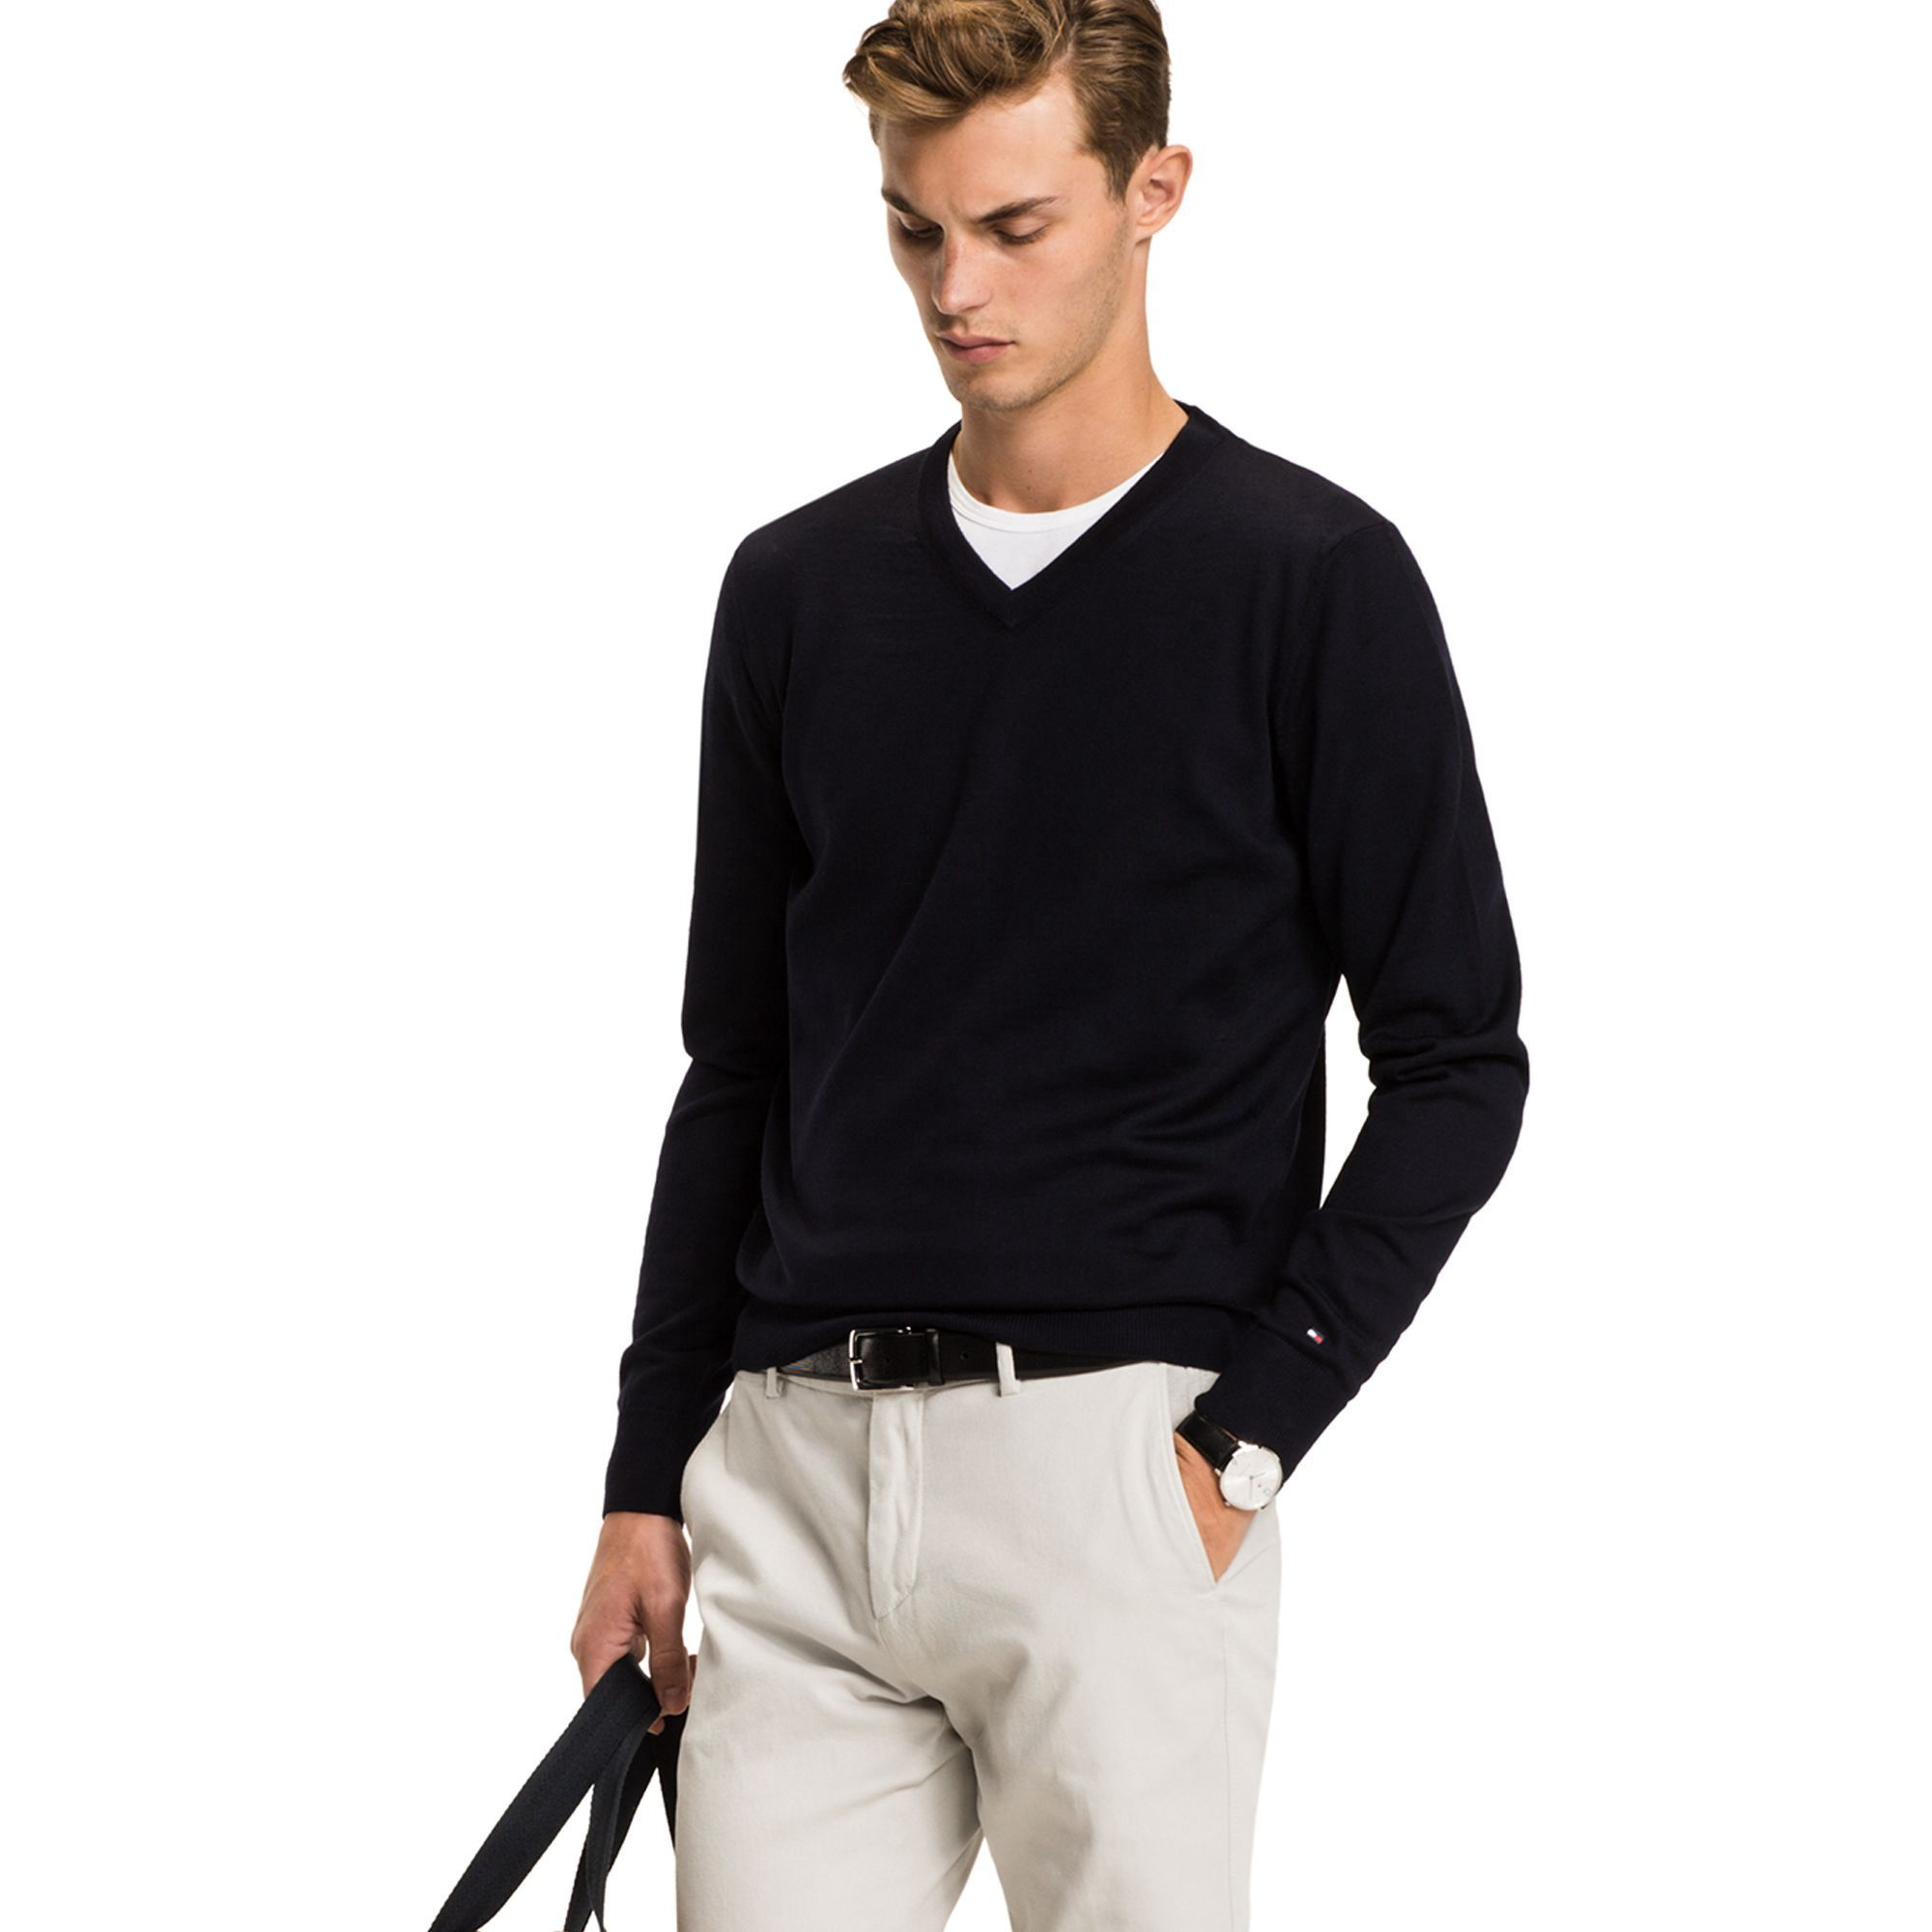 db702459b94 TOMMY HILFIGER TAILORED COLLECTION LUXURY WOOL V-NECK SWEATER - SKY ...